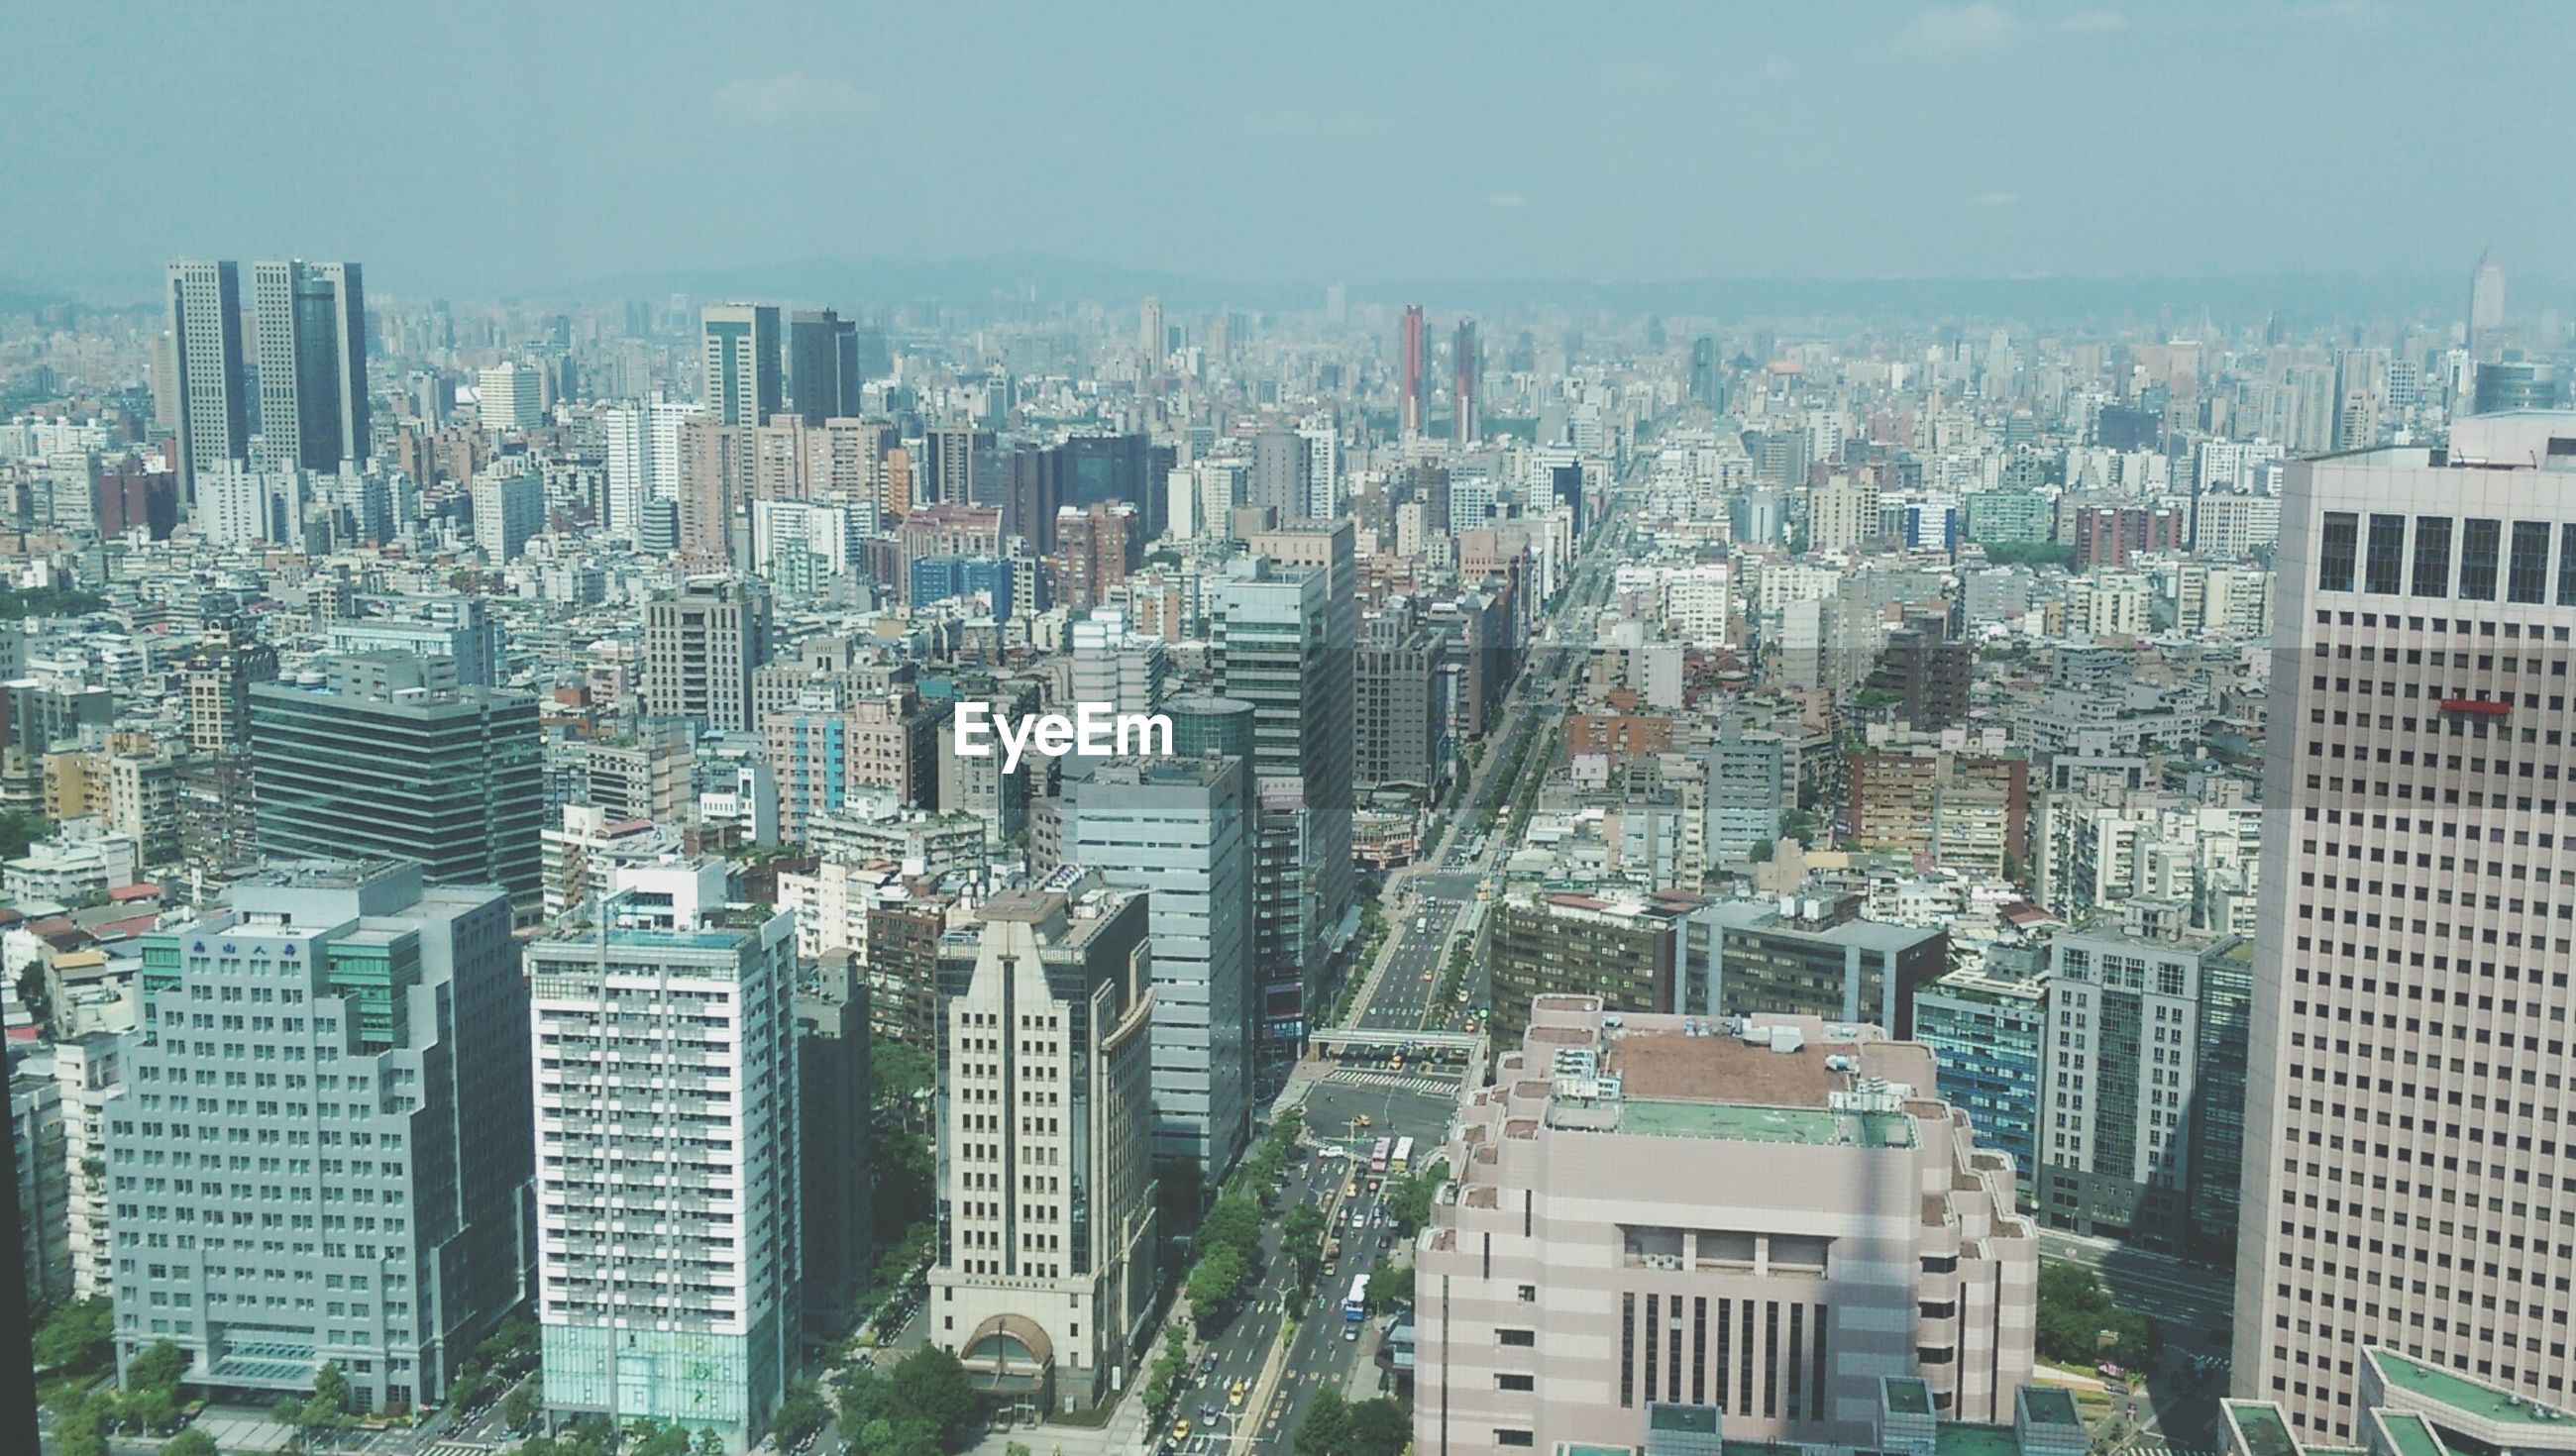 city, cityscape, building exterior, architecture, skyscraper, built structure, crowded, modern, office building, tower, tall - high, high angle view, urban skyline, financial district, residential district, city life, sky, capital cities, residential building, aerial view